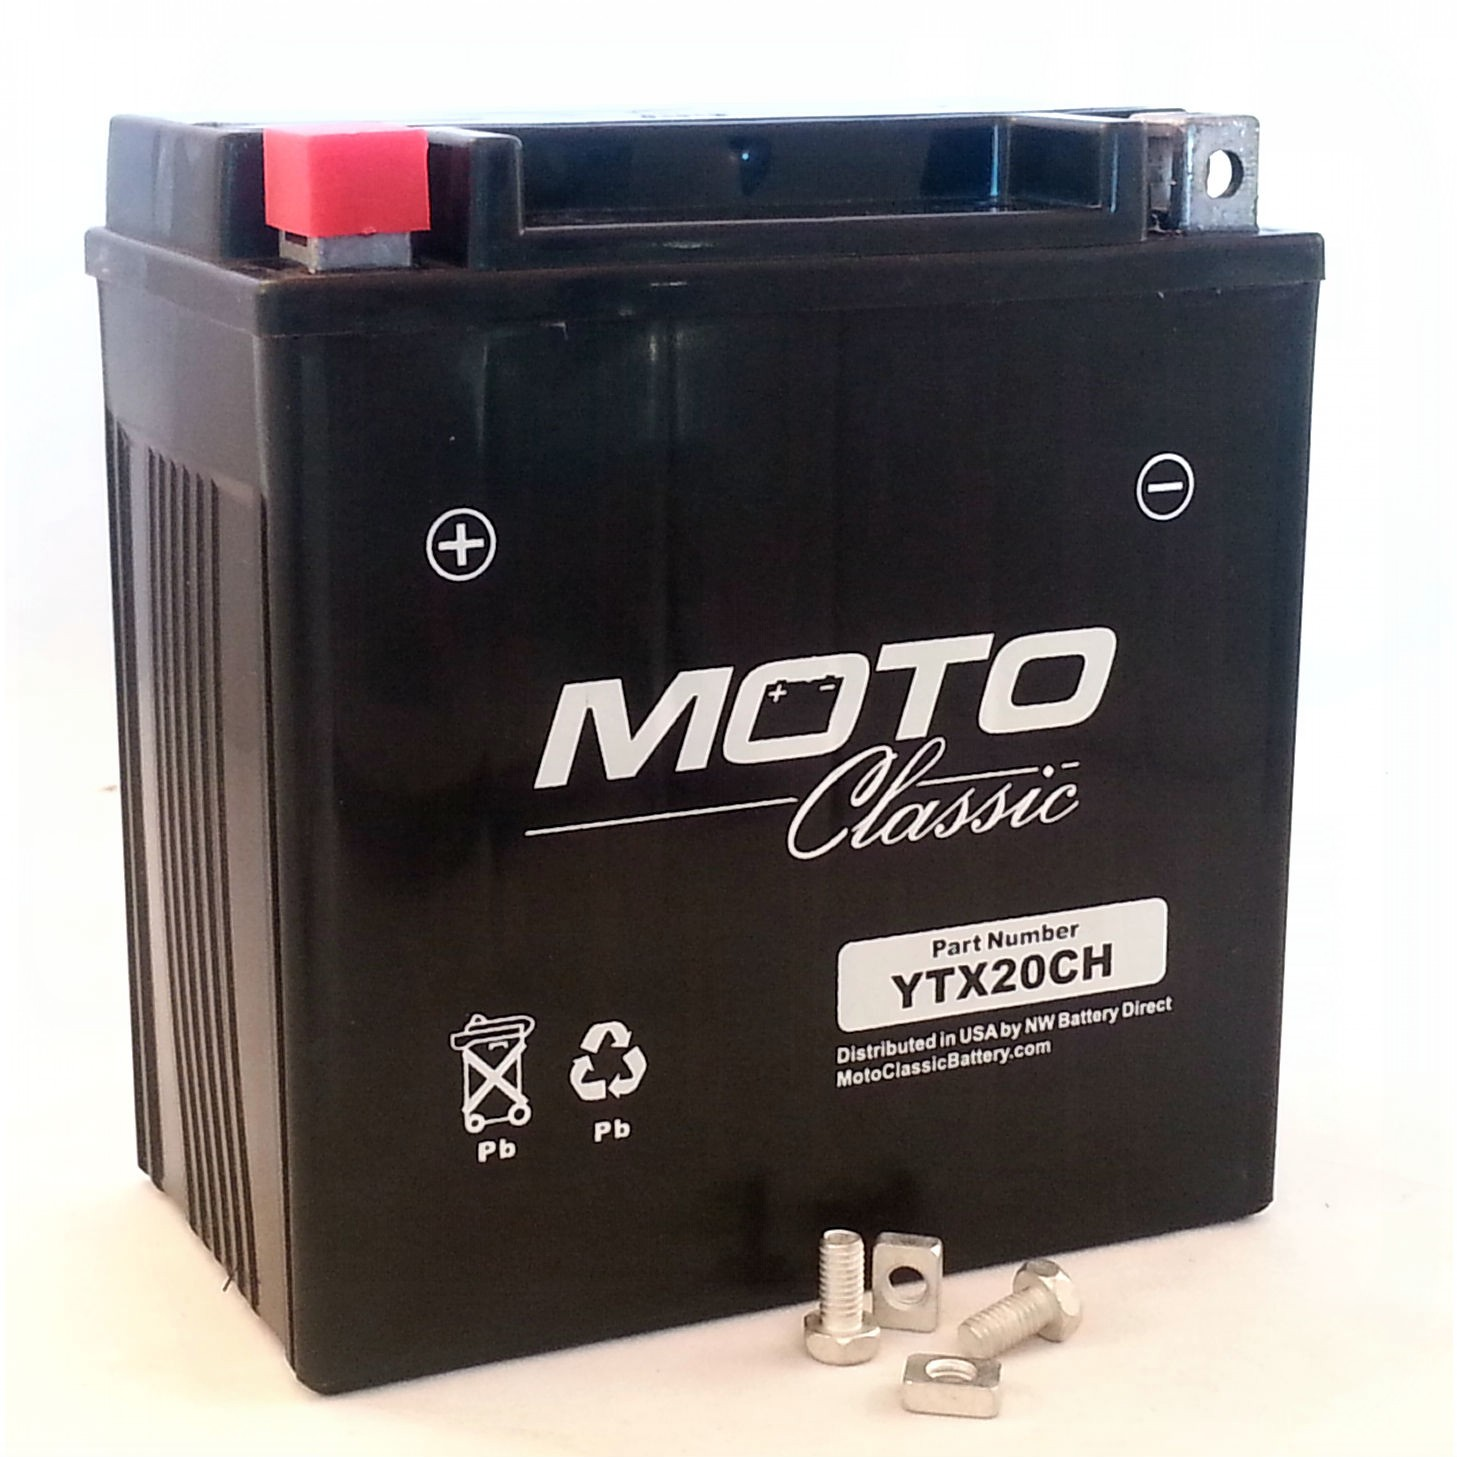 ytx20ch battery moto classic 12 volt motorcycle batteries. Black Bedroom Furniture Sets. Home Design Ideas